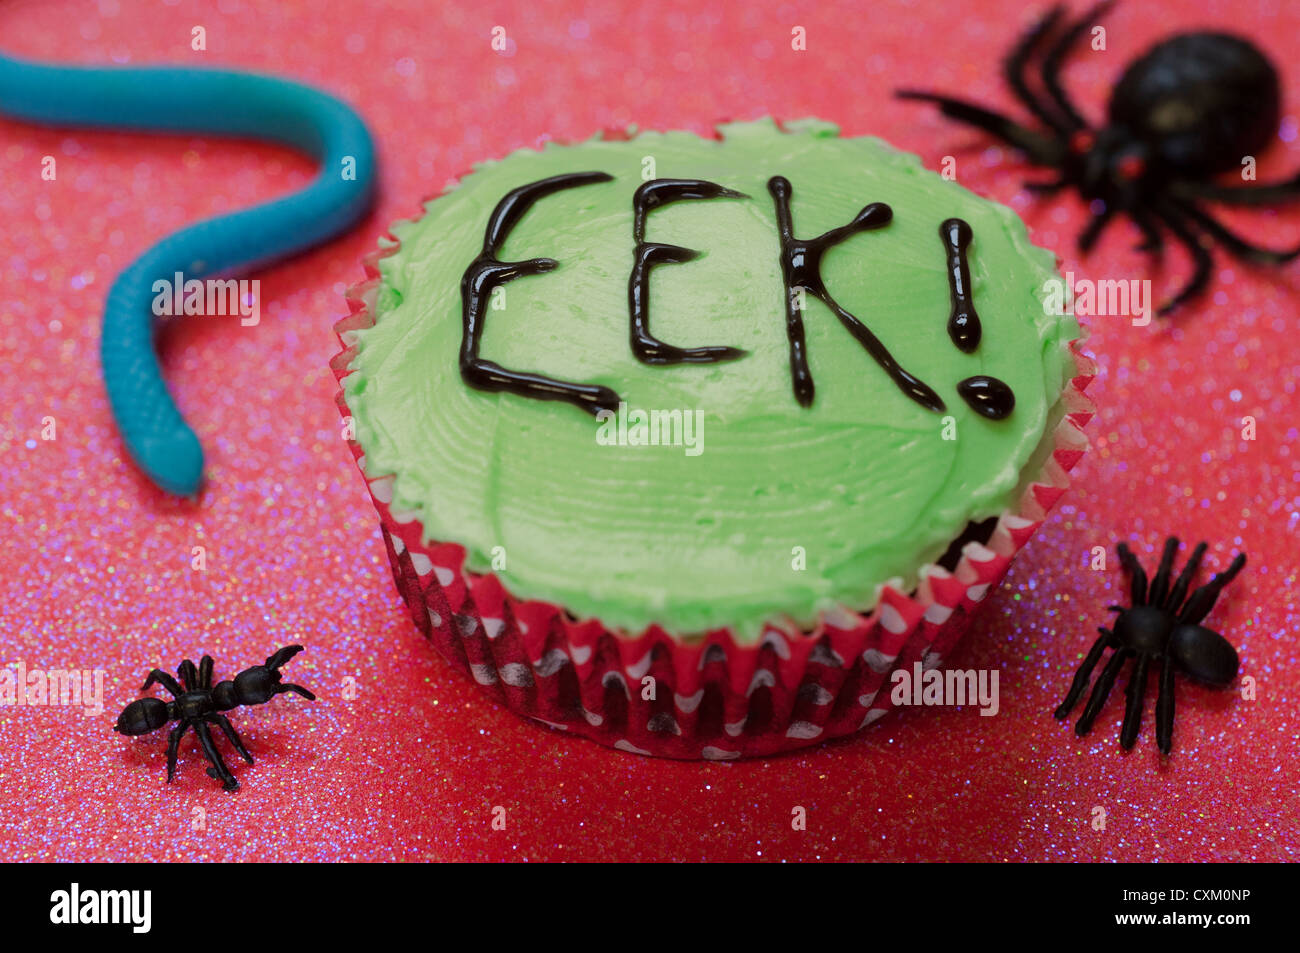 Cupcake with the word eek! iced onto the surface and surrounded by plastic creepy crawlies - Stock Image